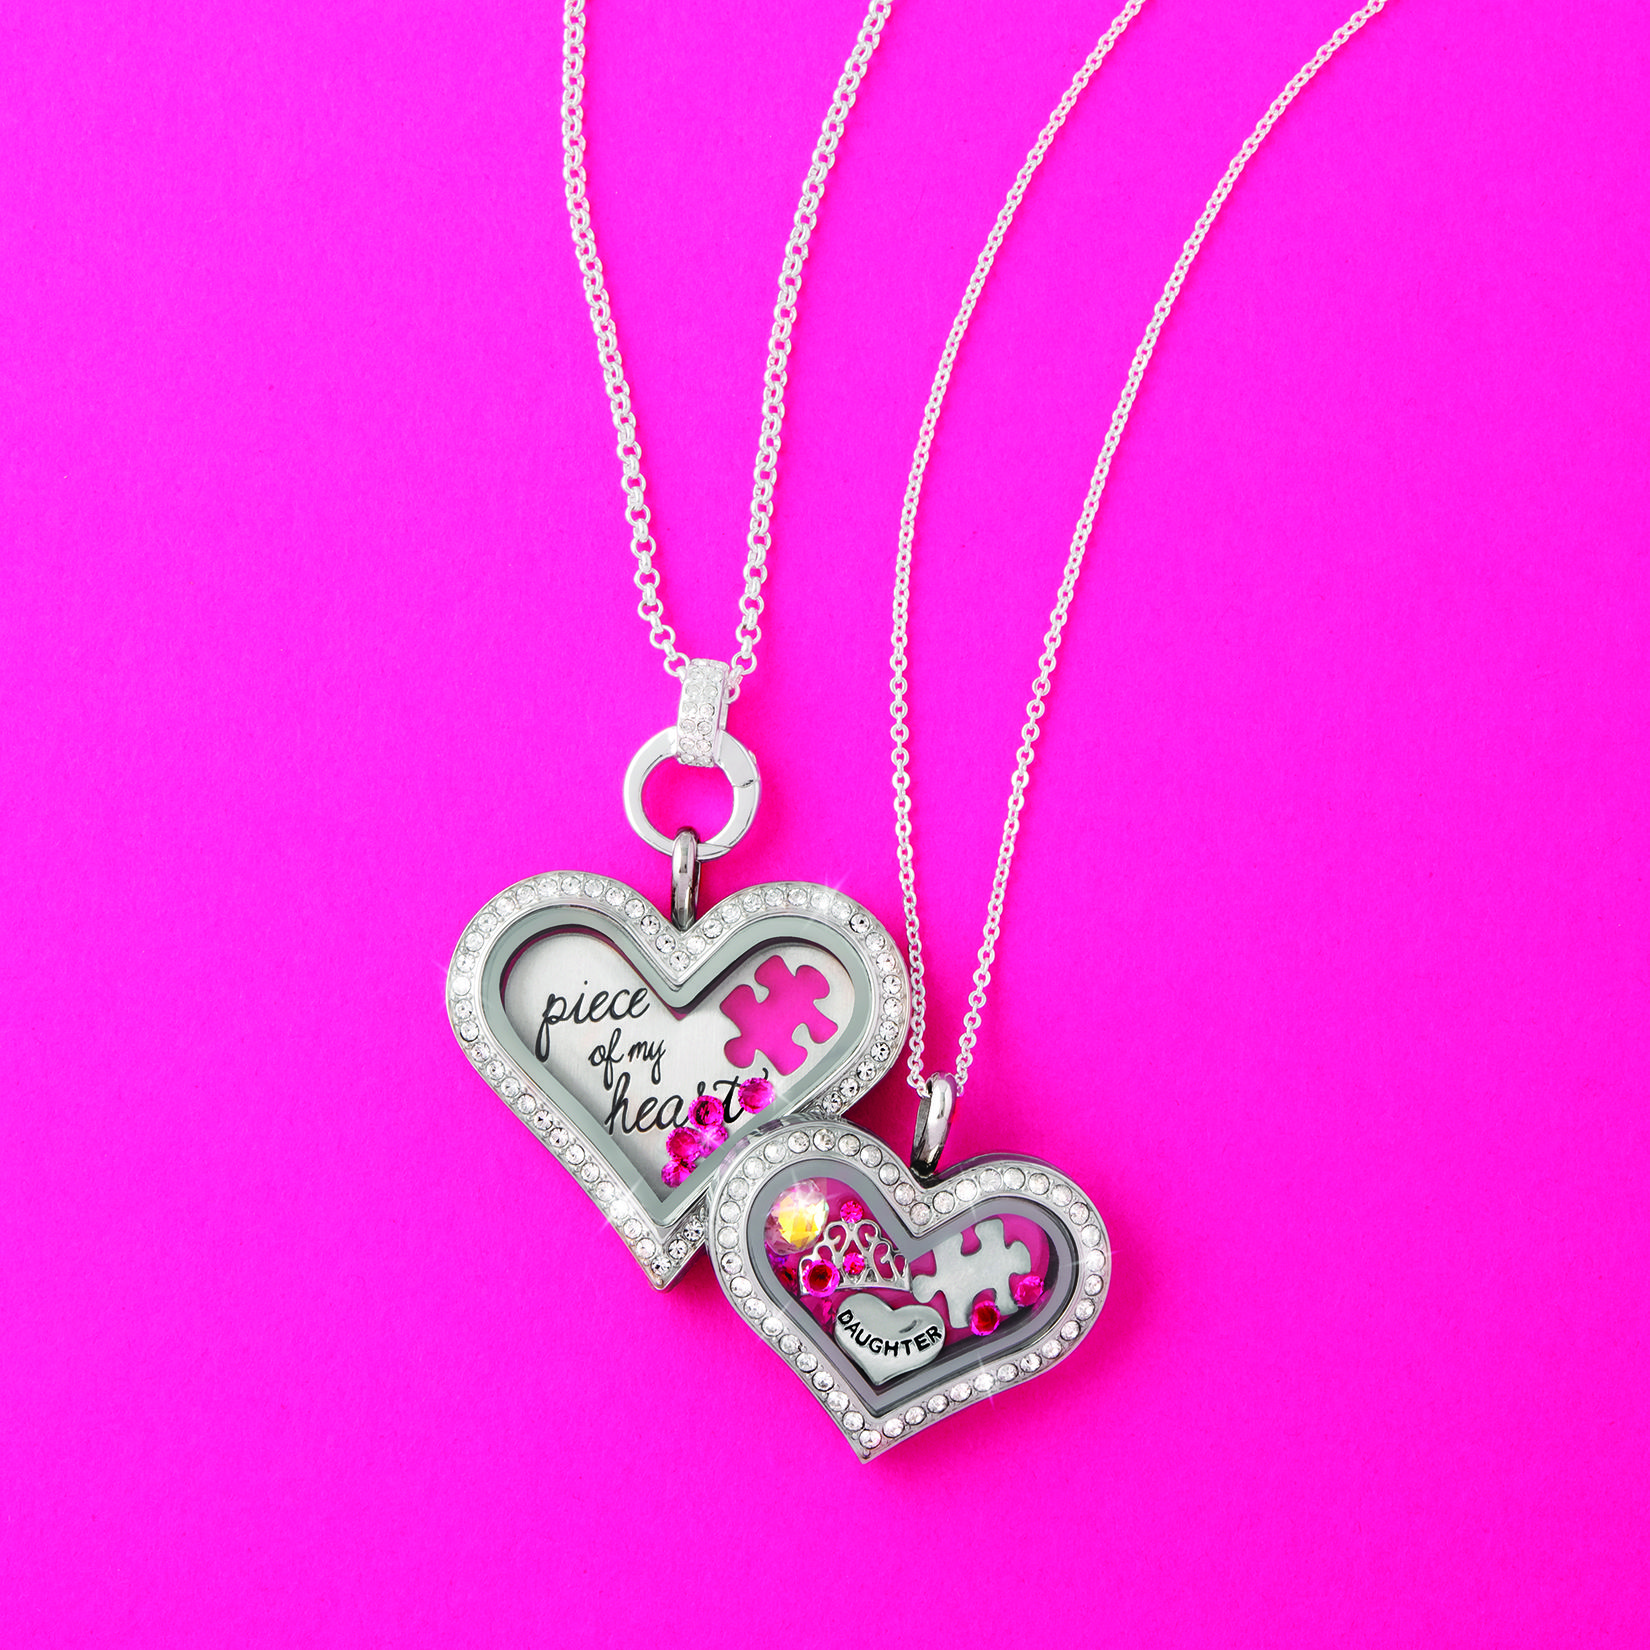 Interested in getting our new medium heart locket for free interested in getting our new medium heart locket for free contact me for details jeuxipadfo Images